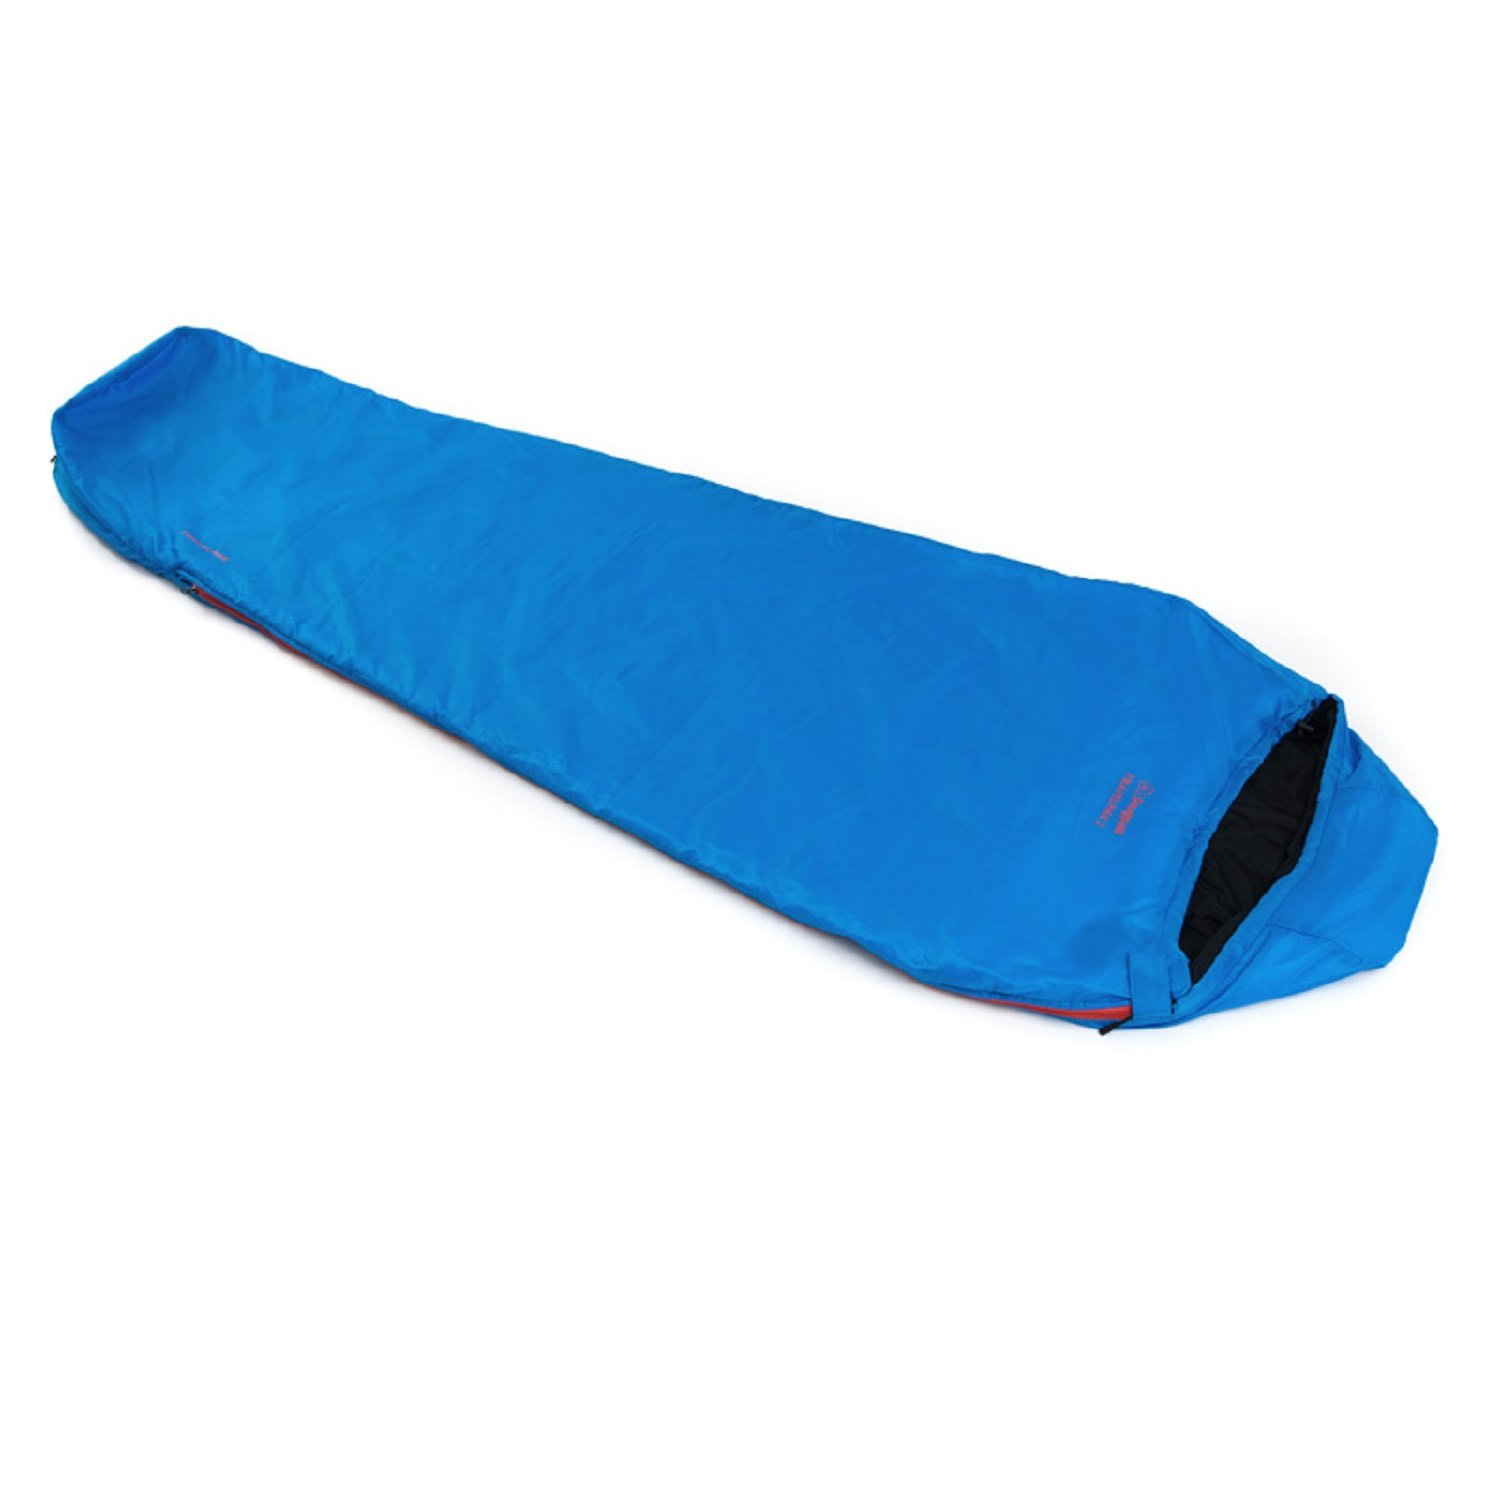 An image of Snugpak Travel Pak 2 98820 Men's Sleeping Bag